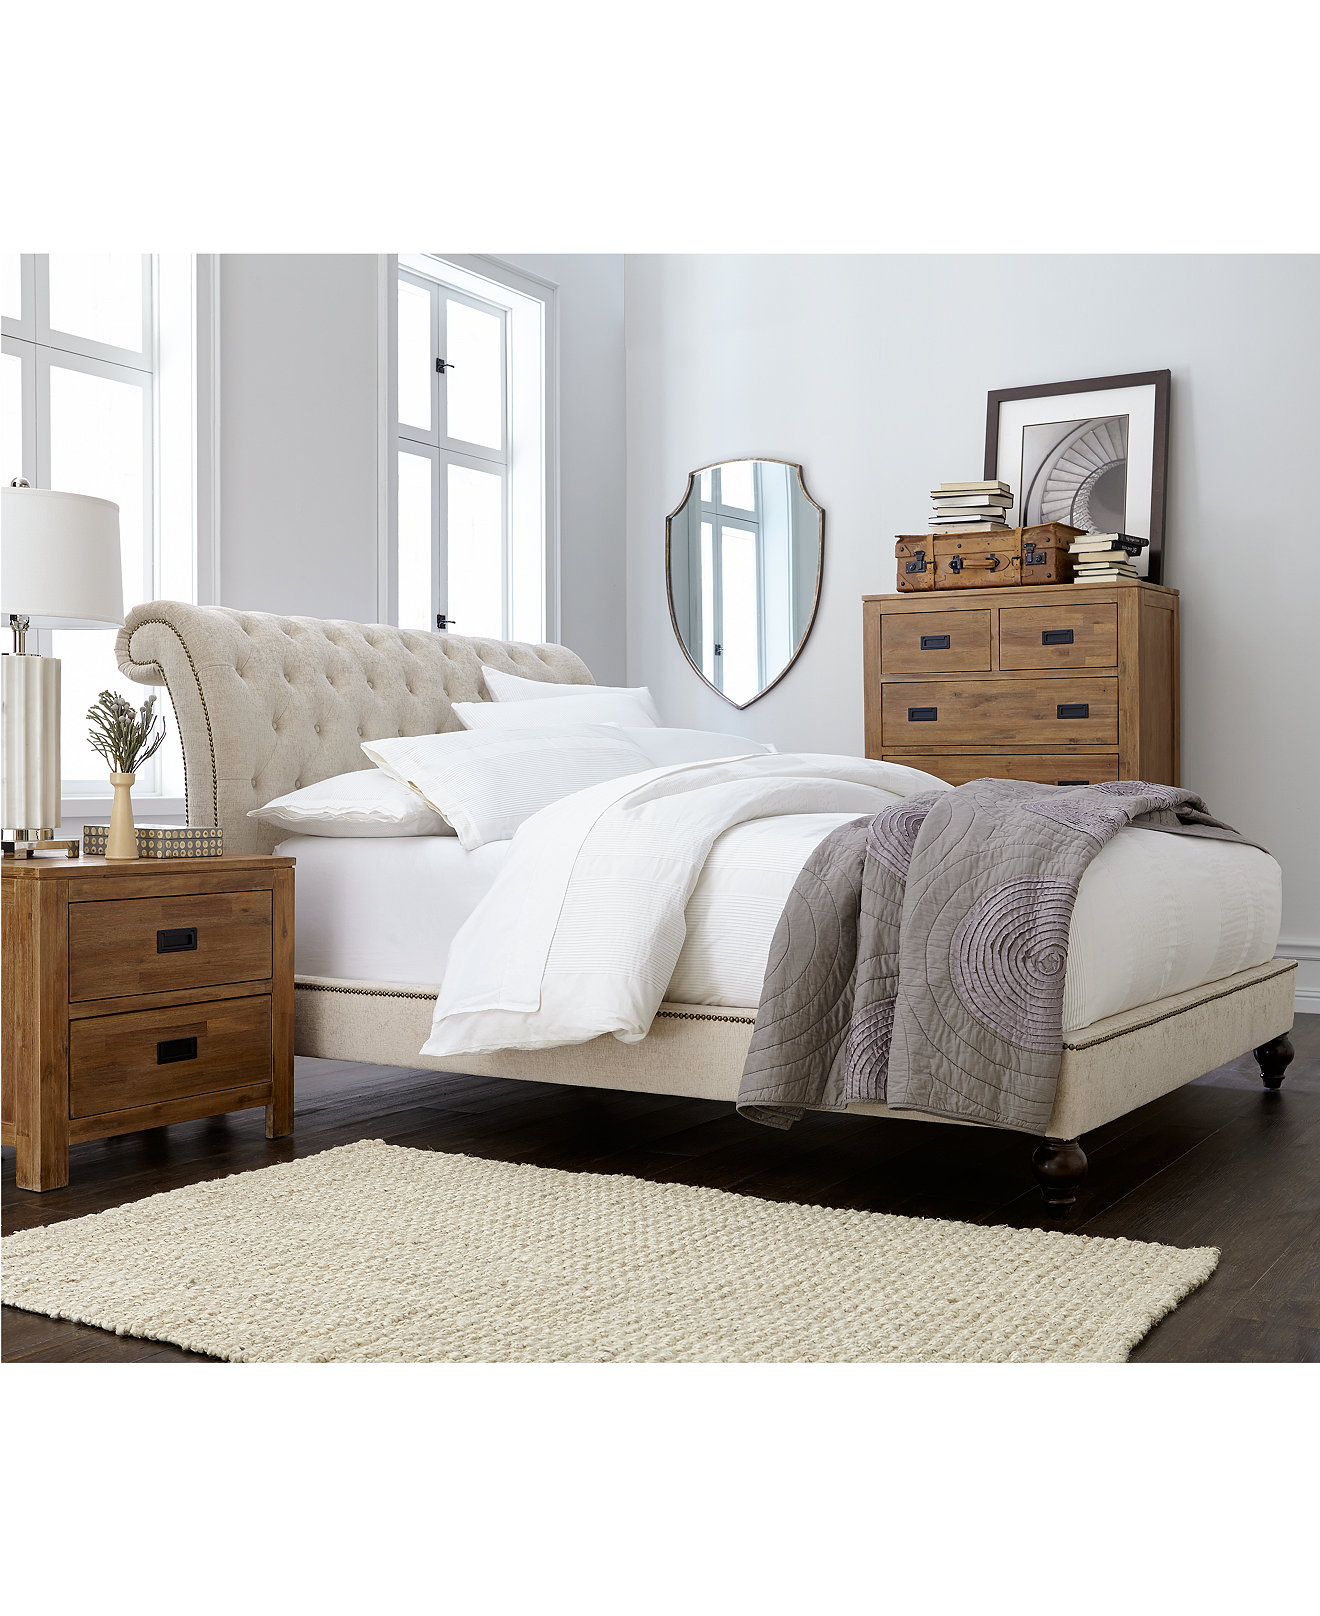 Macys Furniture Bedroom Mirrored Furniture Shop Mirrored Furniture Macys